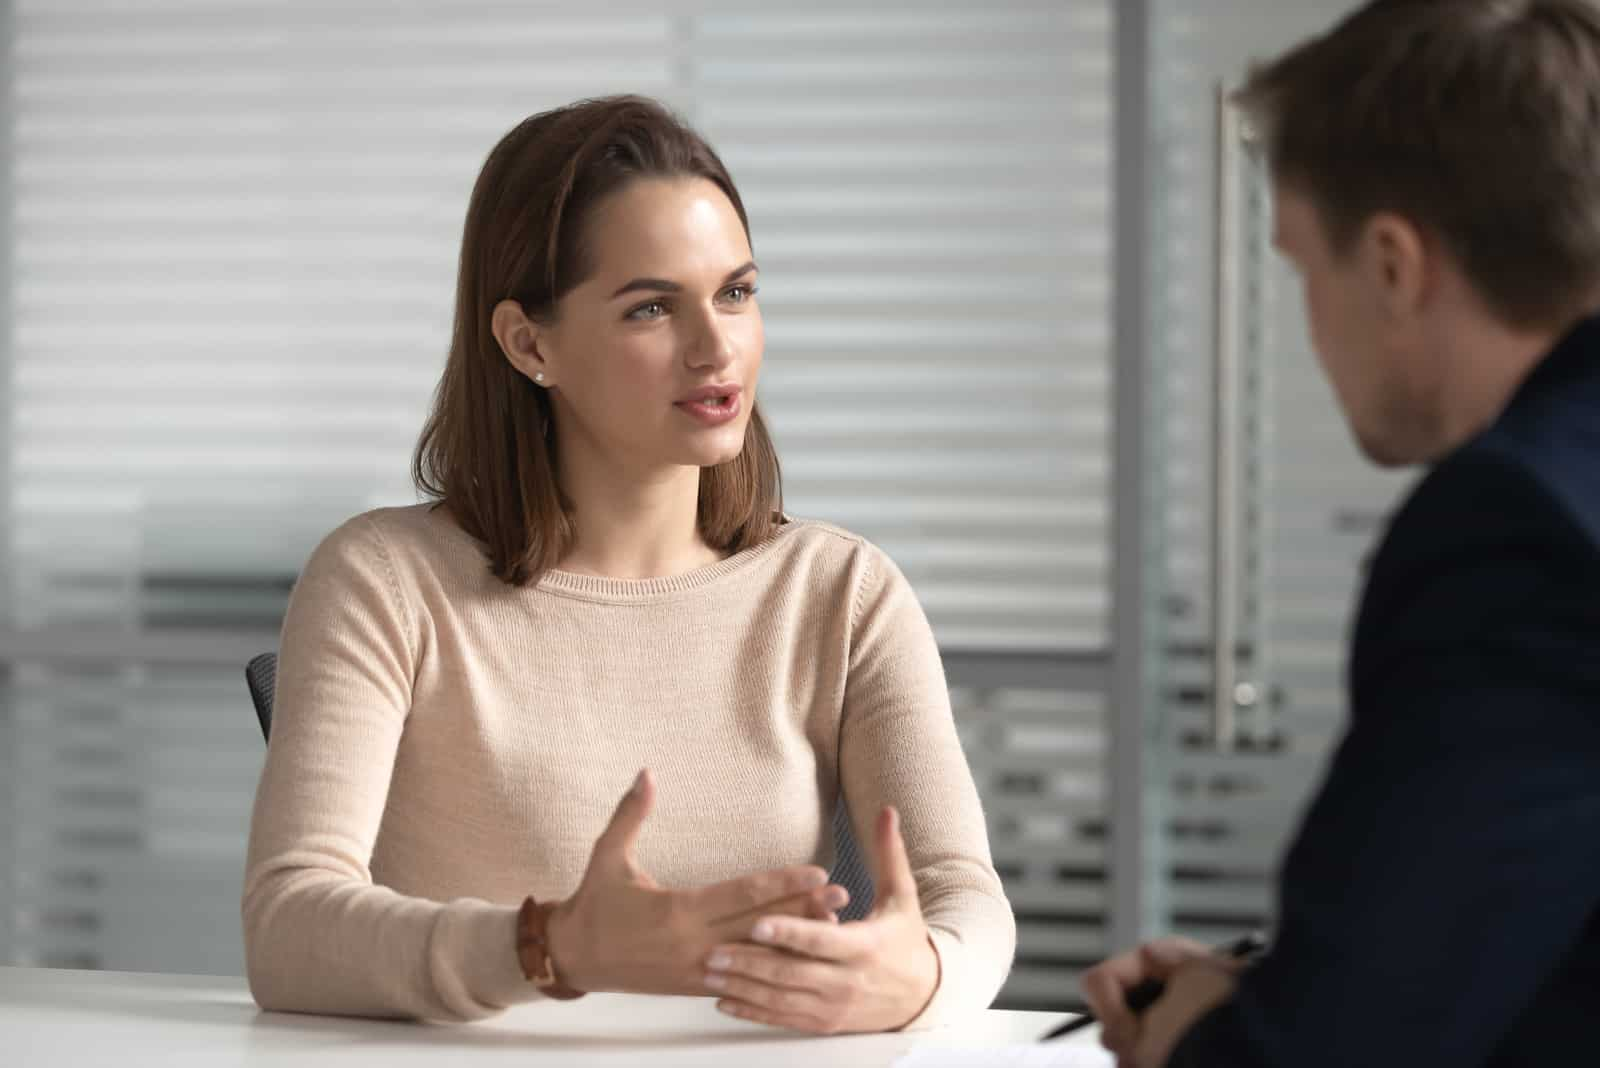 a woman sits at a table and argues with a man